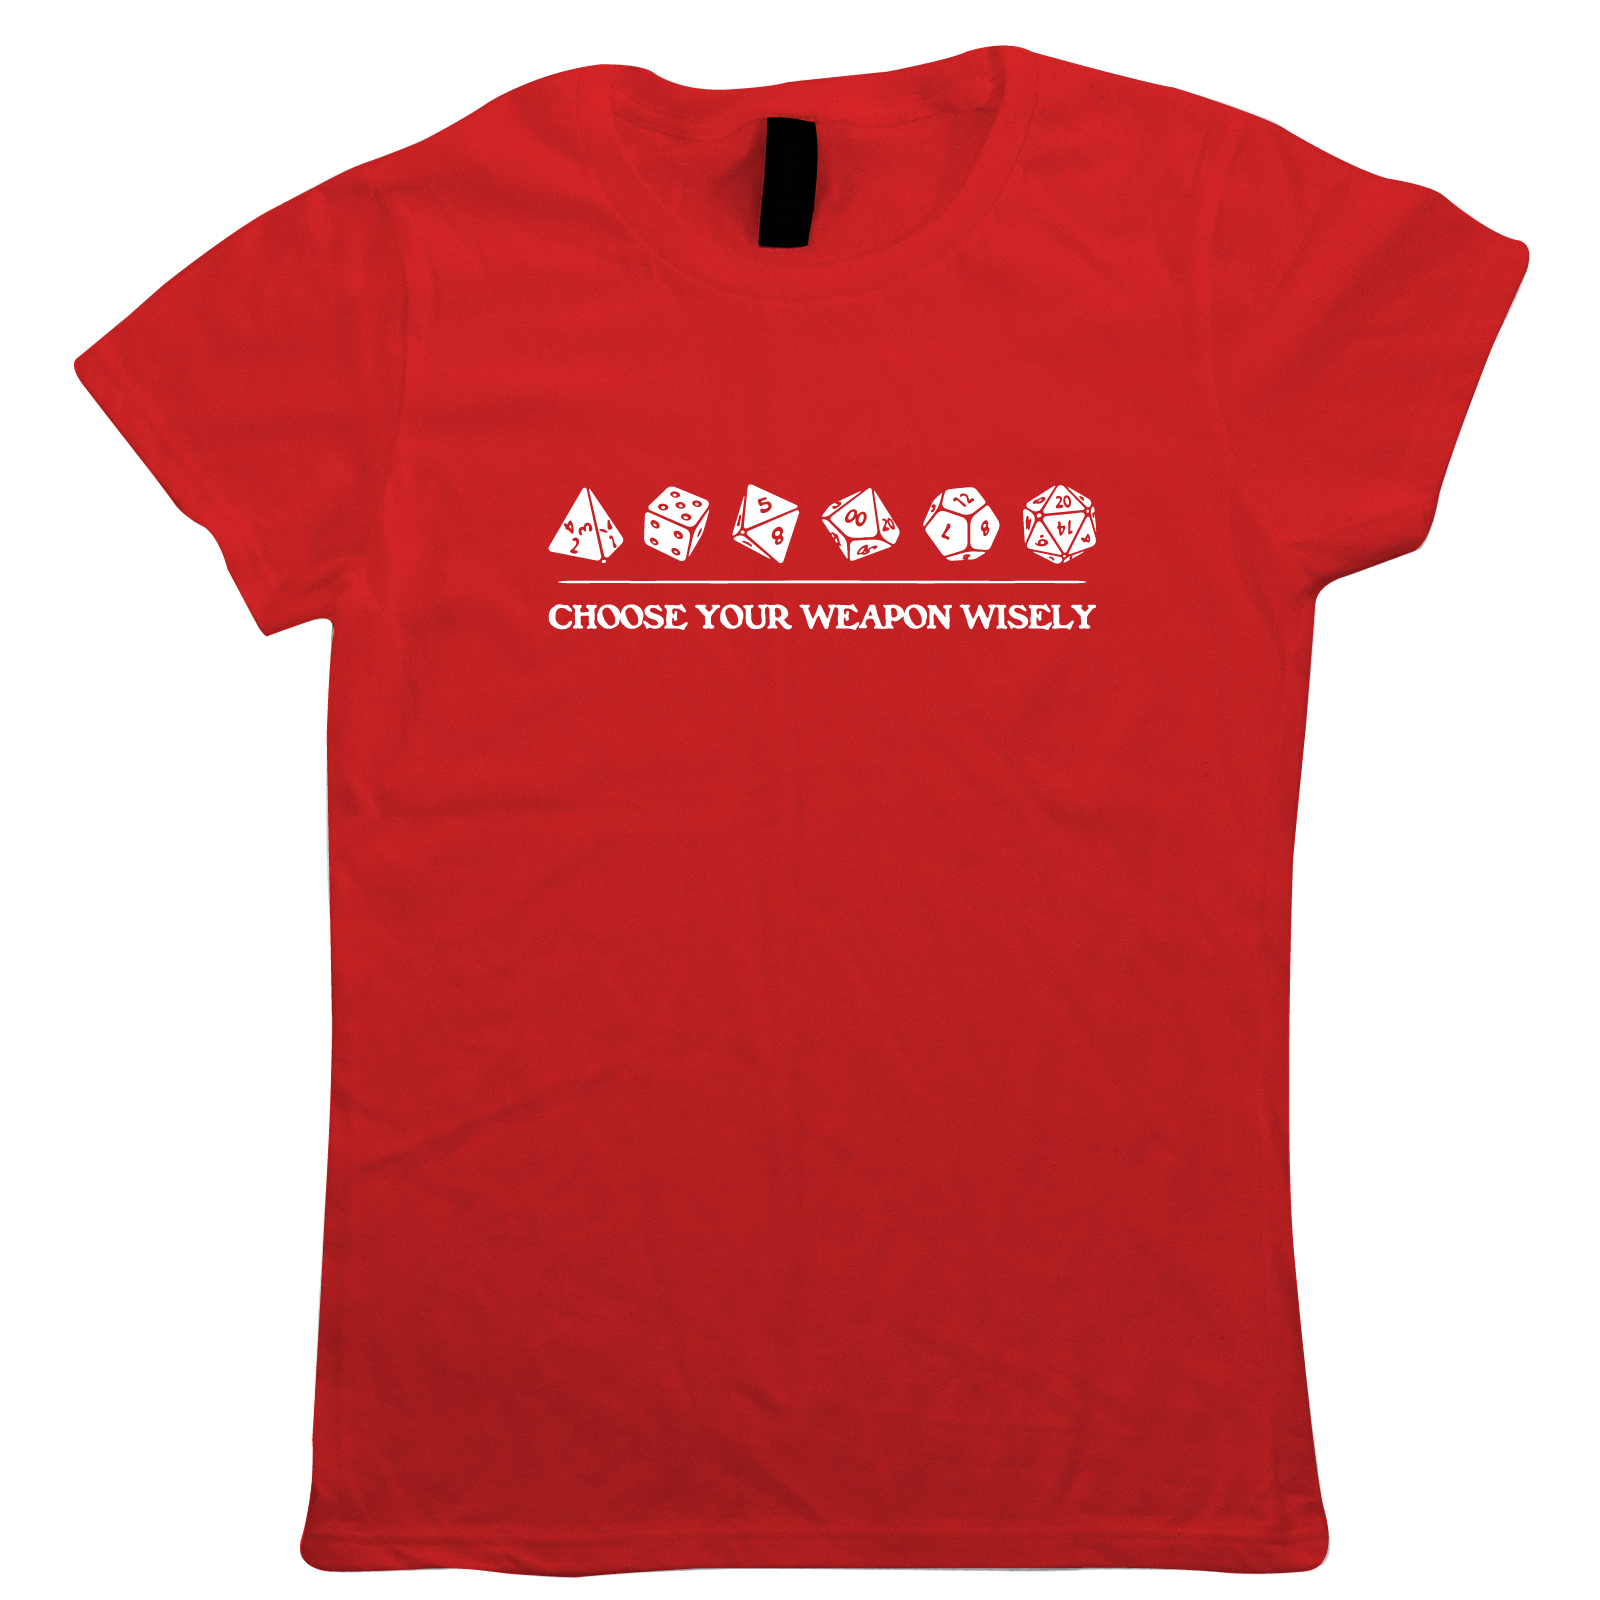 Choose-Your-Weapon-Wisely-Womens-T-Shirt-Hobbies-DND-Dungeon-Dragons-Gift-Her